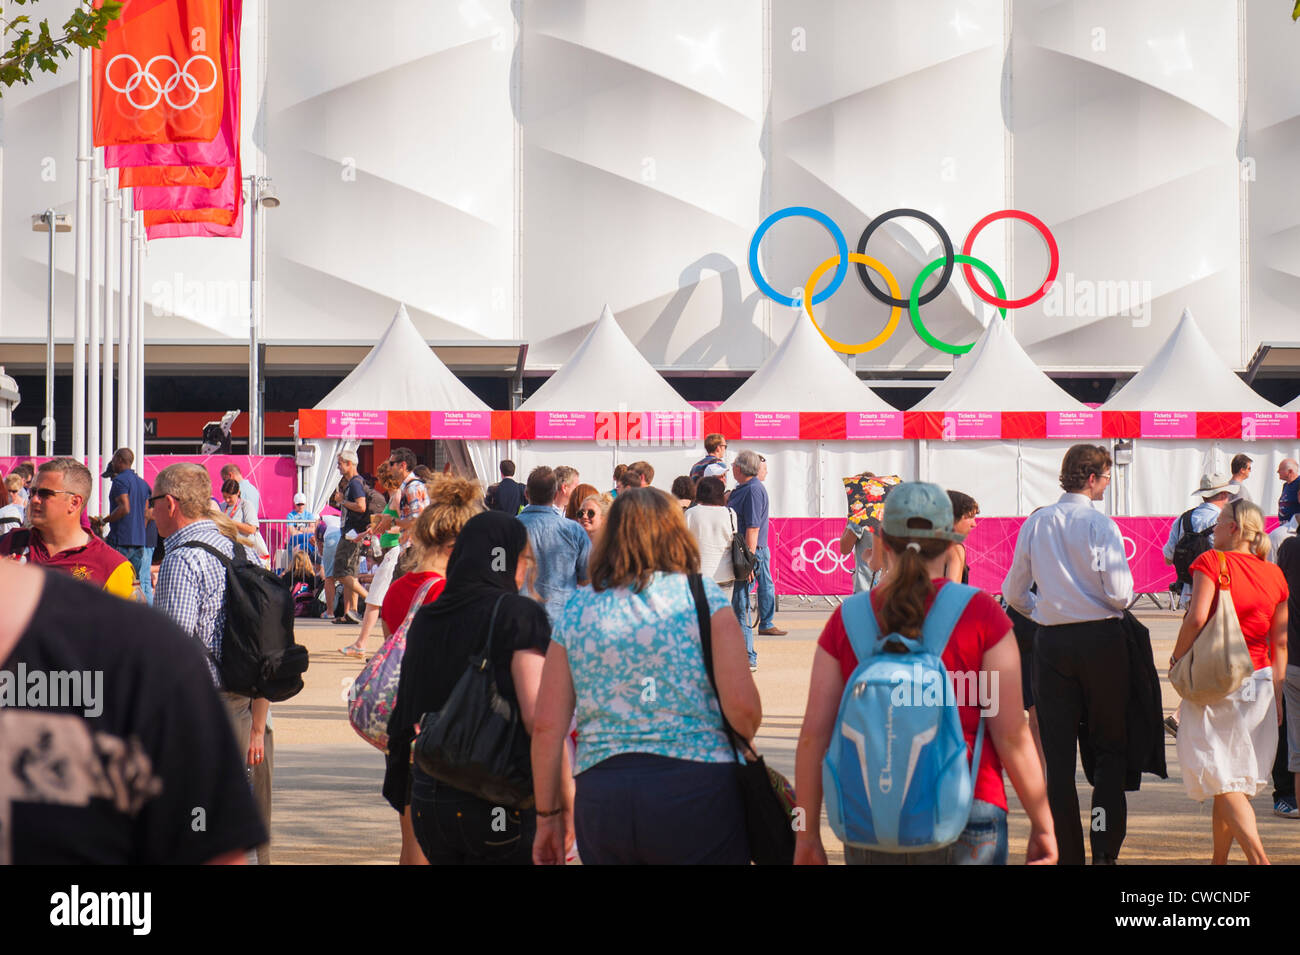 London 2012 Stratford Olympic Park Street Market area Basketball Arena people crowds fast food stalls kiosks tents - Stock Image